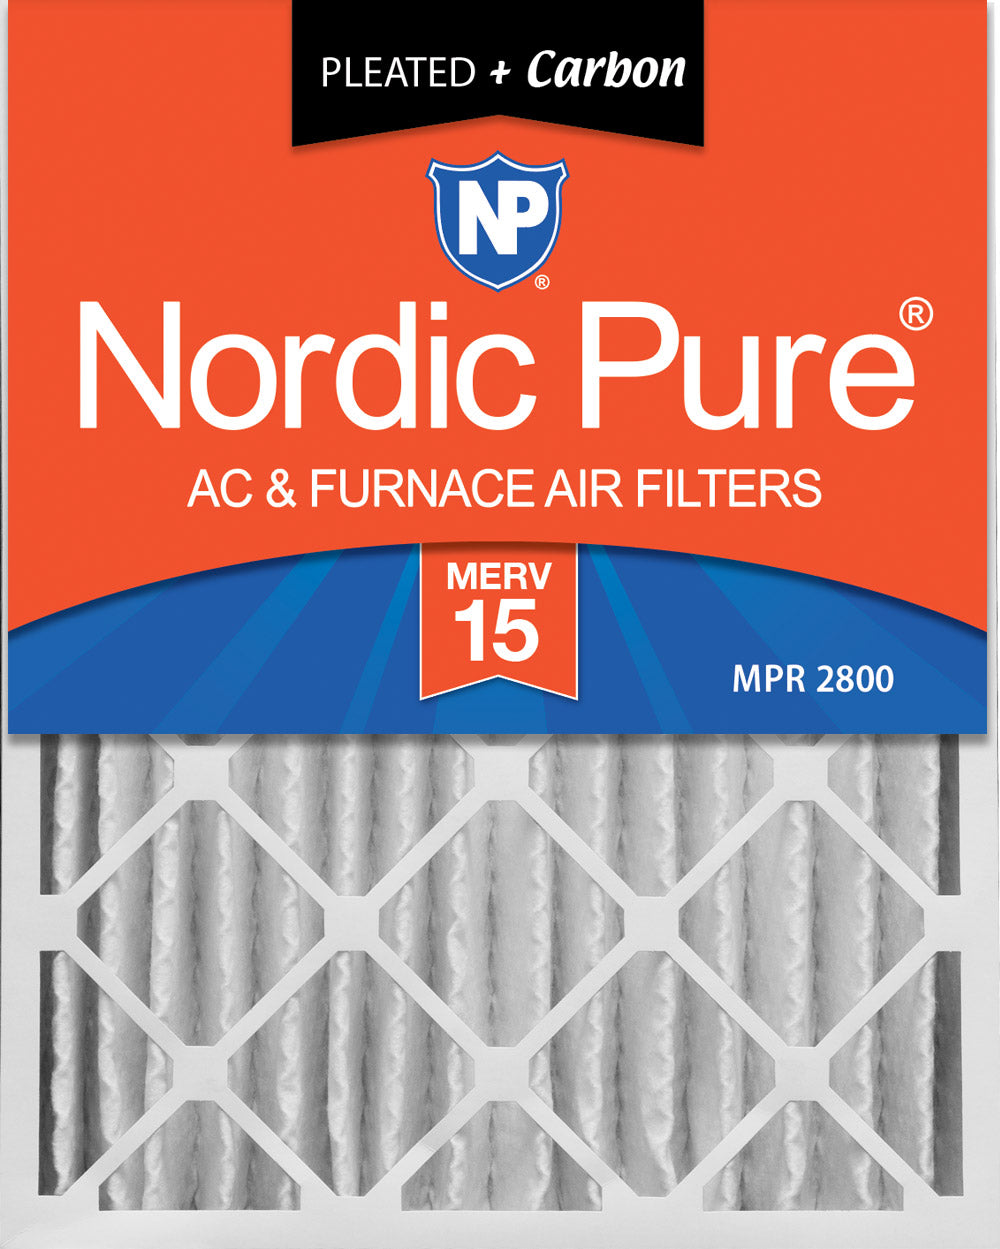 16x20x4 (3 5/8) Pleated Air Filters MERV 15 Plus Carbon 1 Pack